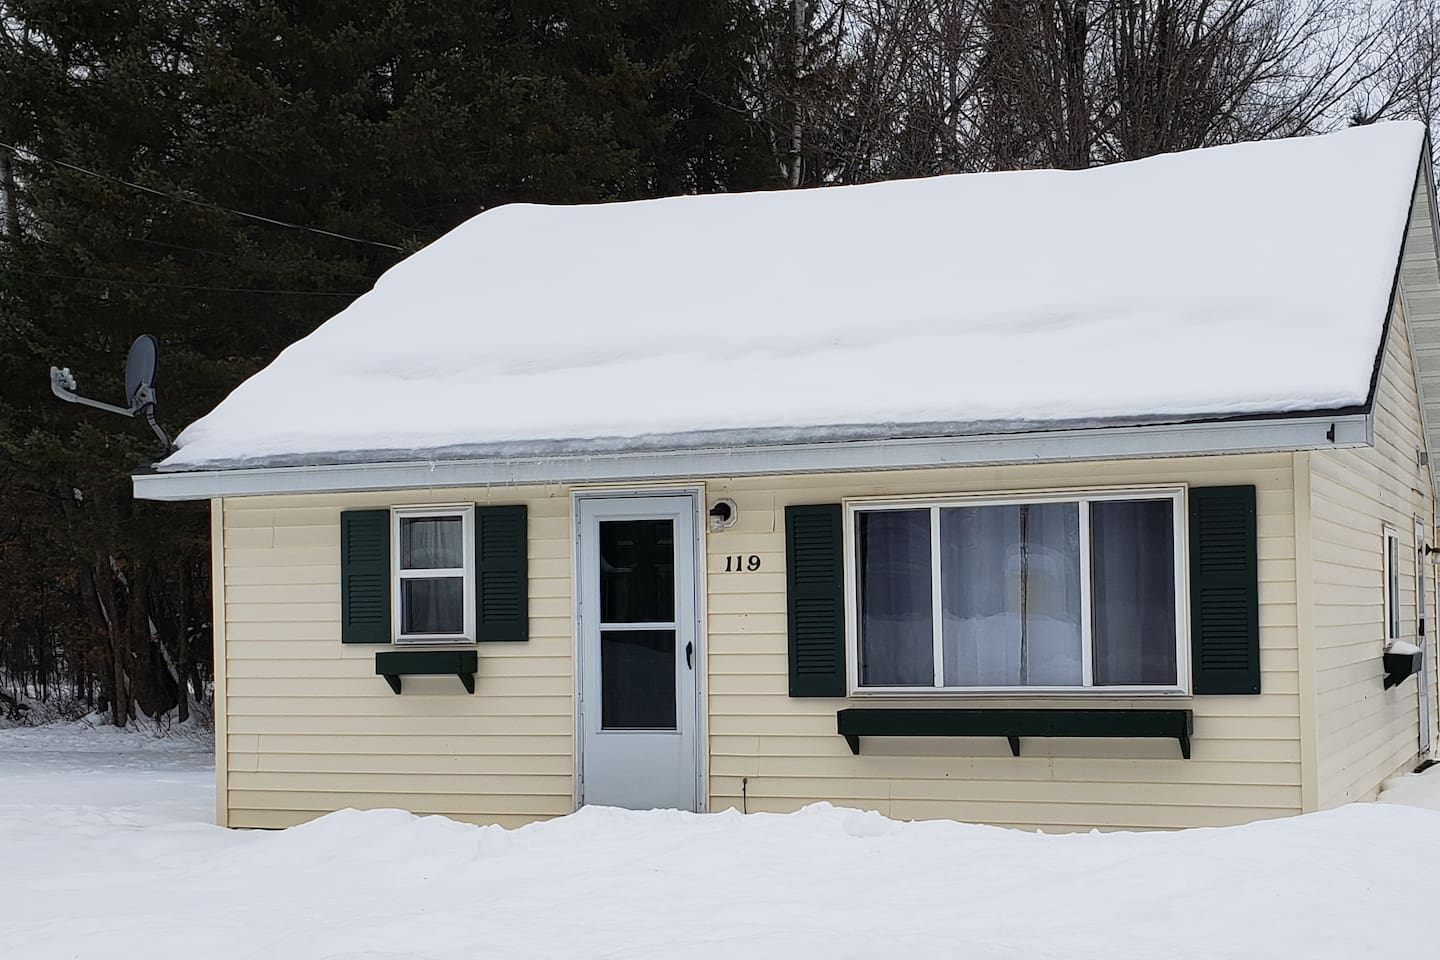 2 bedroom, 1 bath, full kitchen, right on the atv/snowmobile trail. Plenty of off Street parking for cars, boats and trailers.